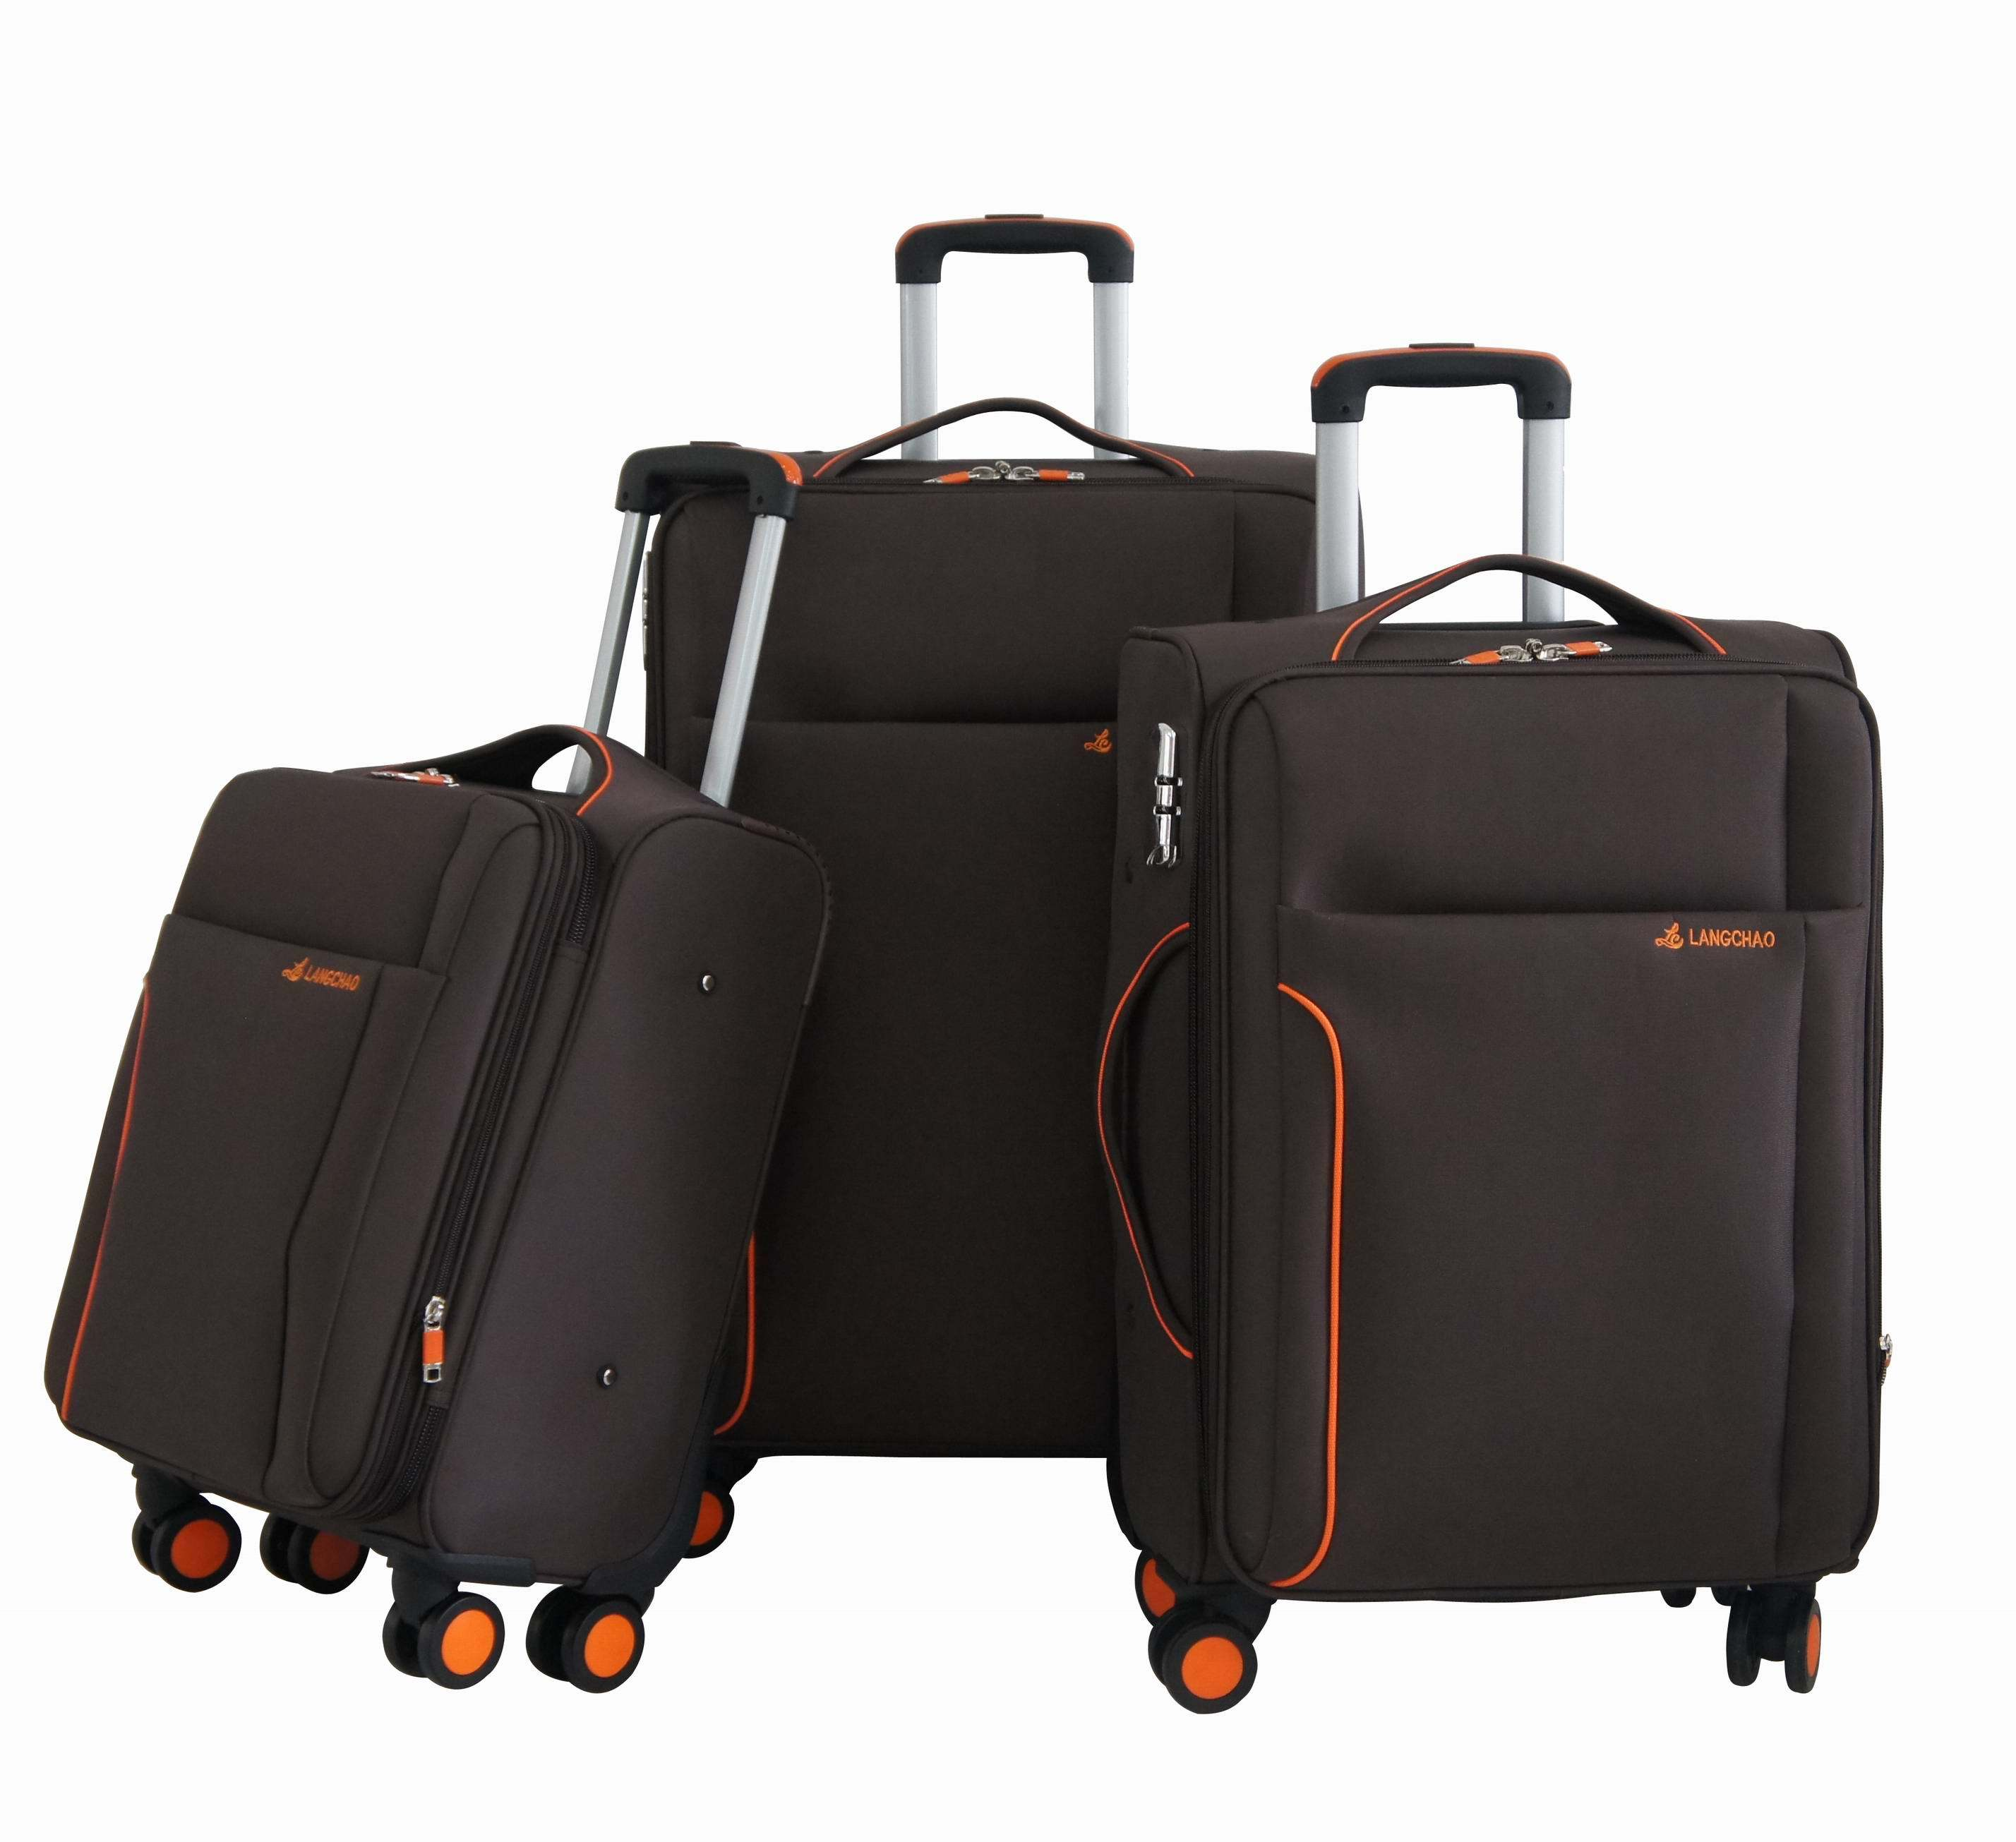 Fabric Soft Trolley Bag Luggage Set Suitcase 1jb012